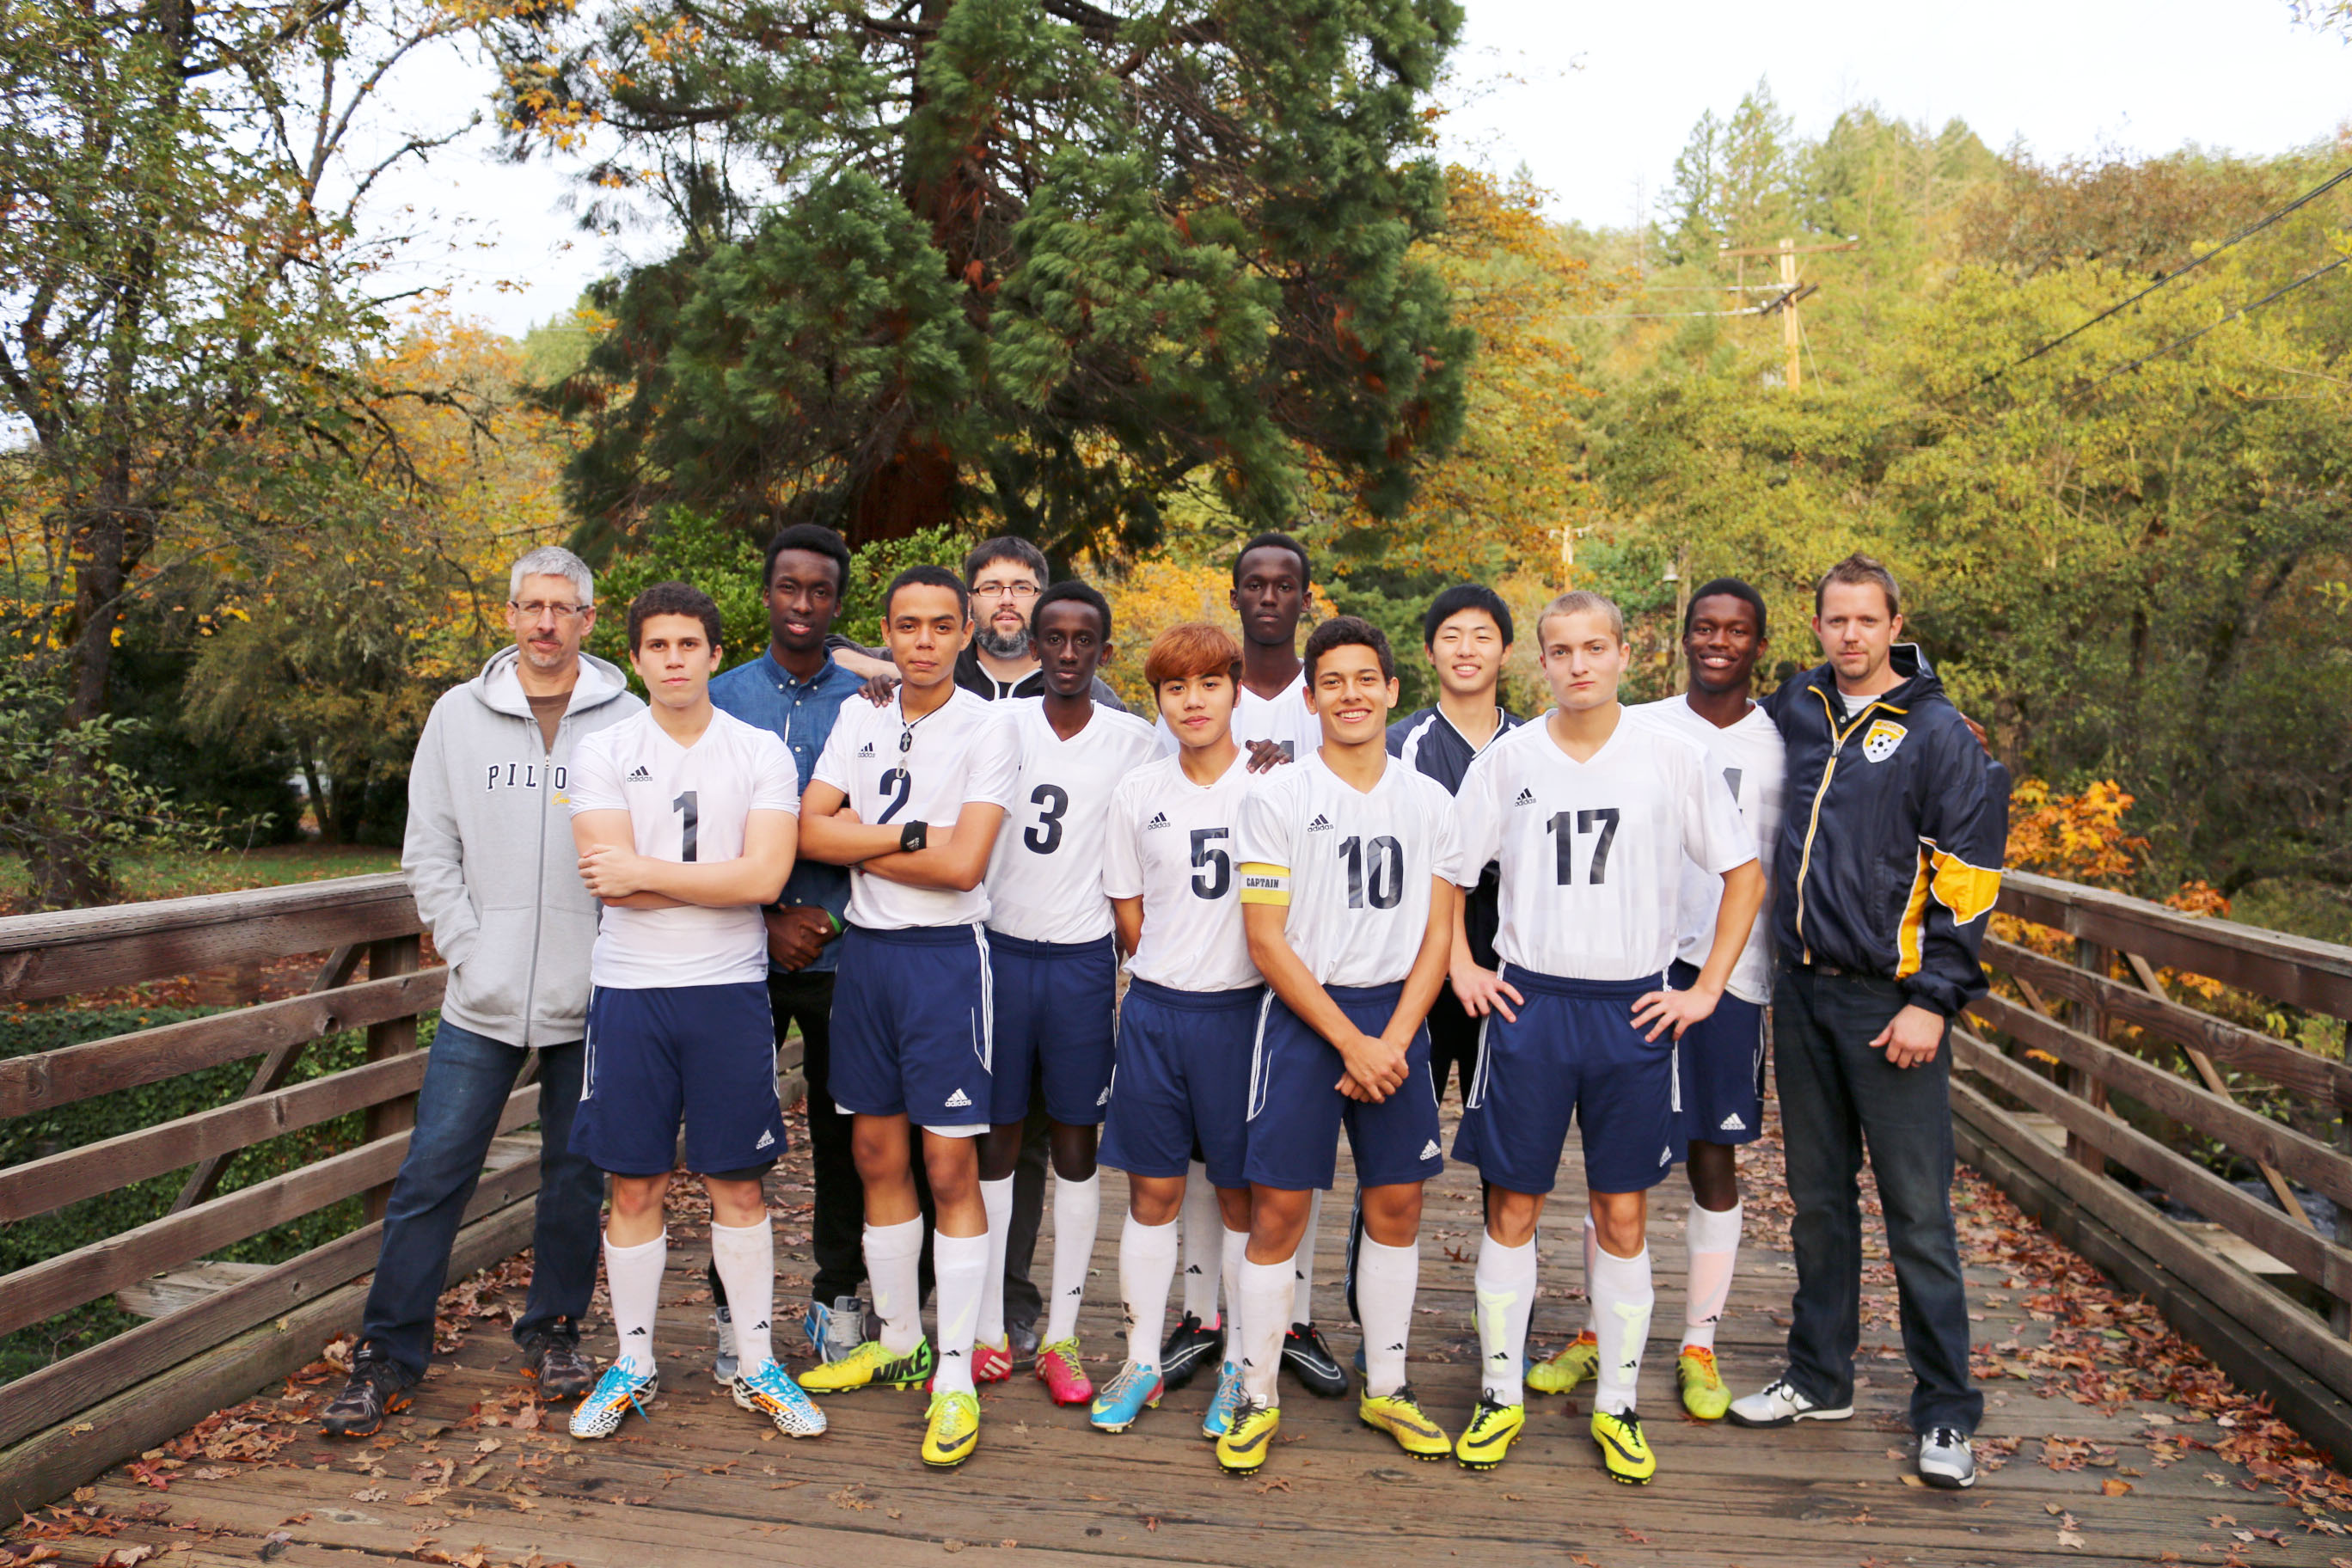 Canyonville Christian Academy, soccer team, international players, seniors